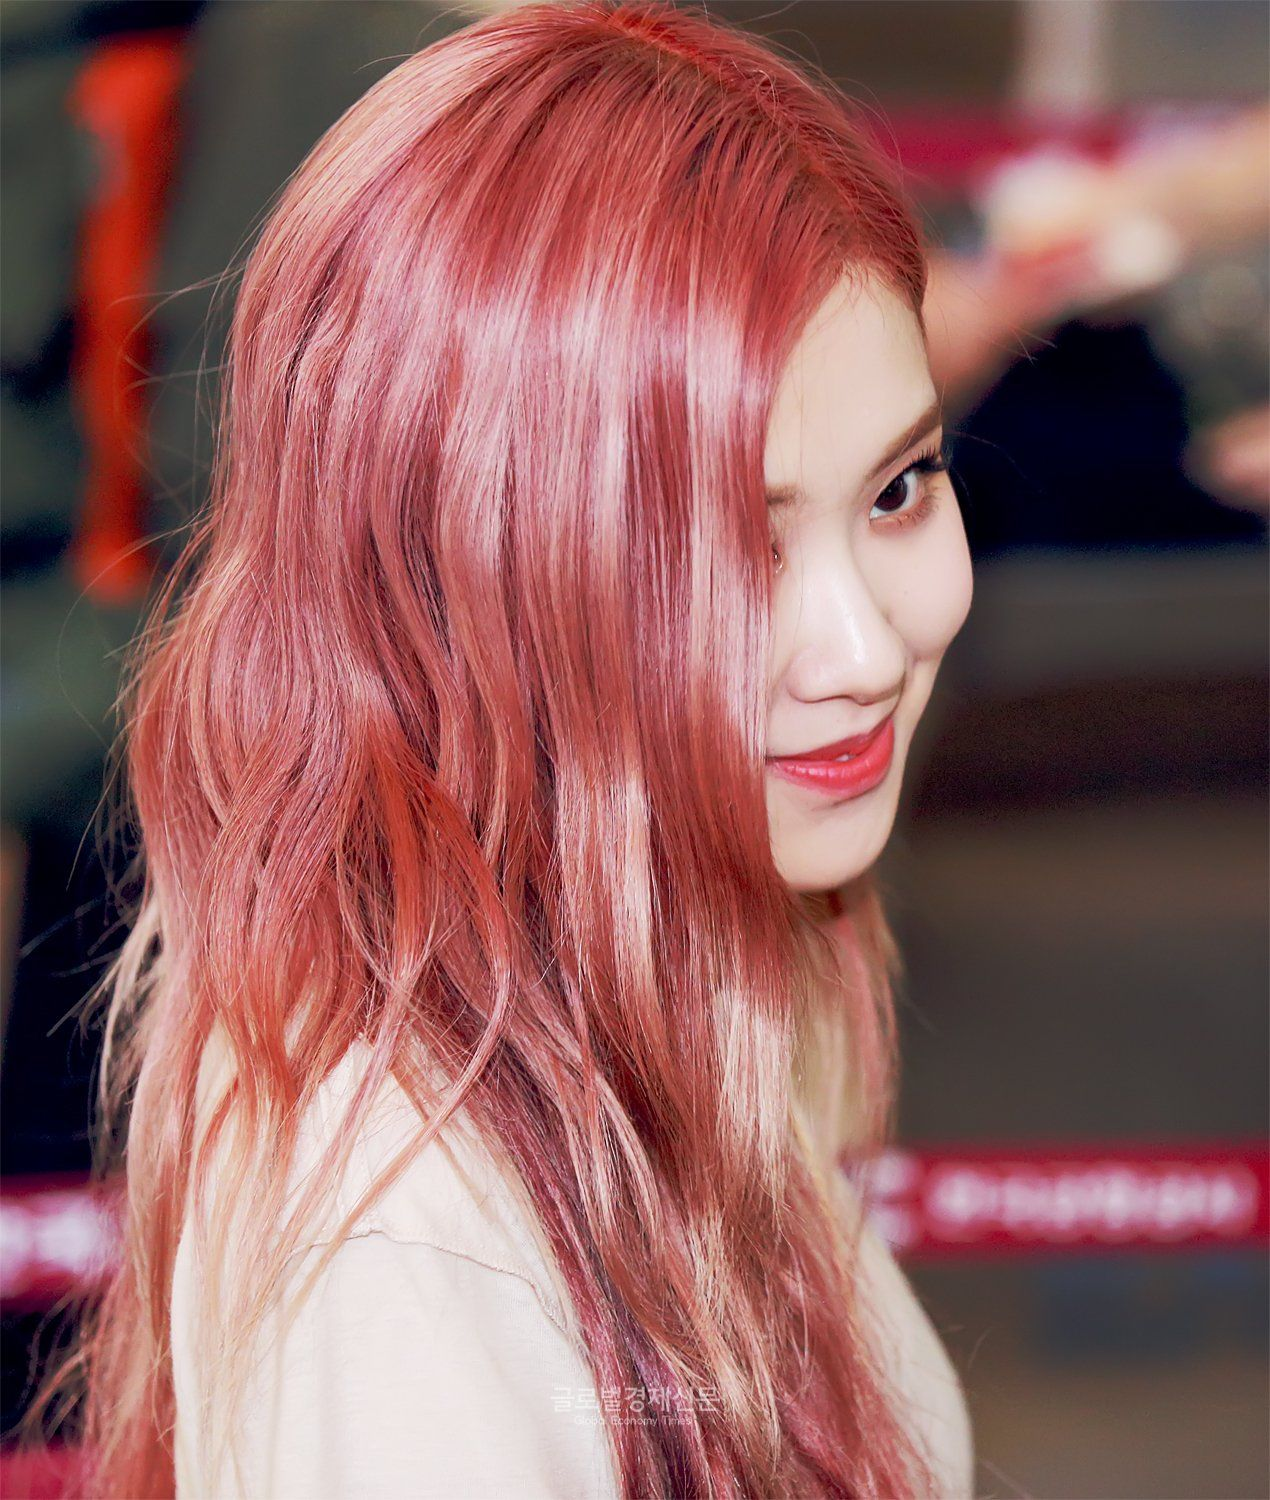 CHARMING ROSÉ on in 2020 | Rose hair, Rose pink hair, Pink hair